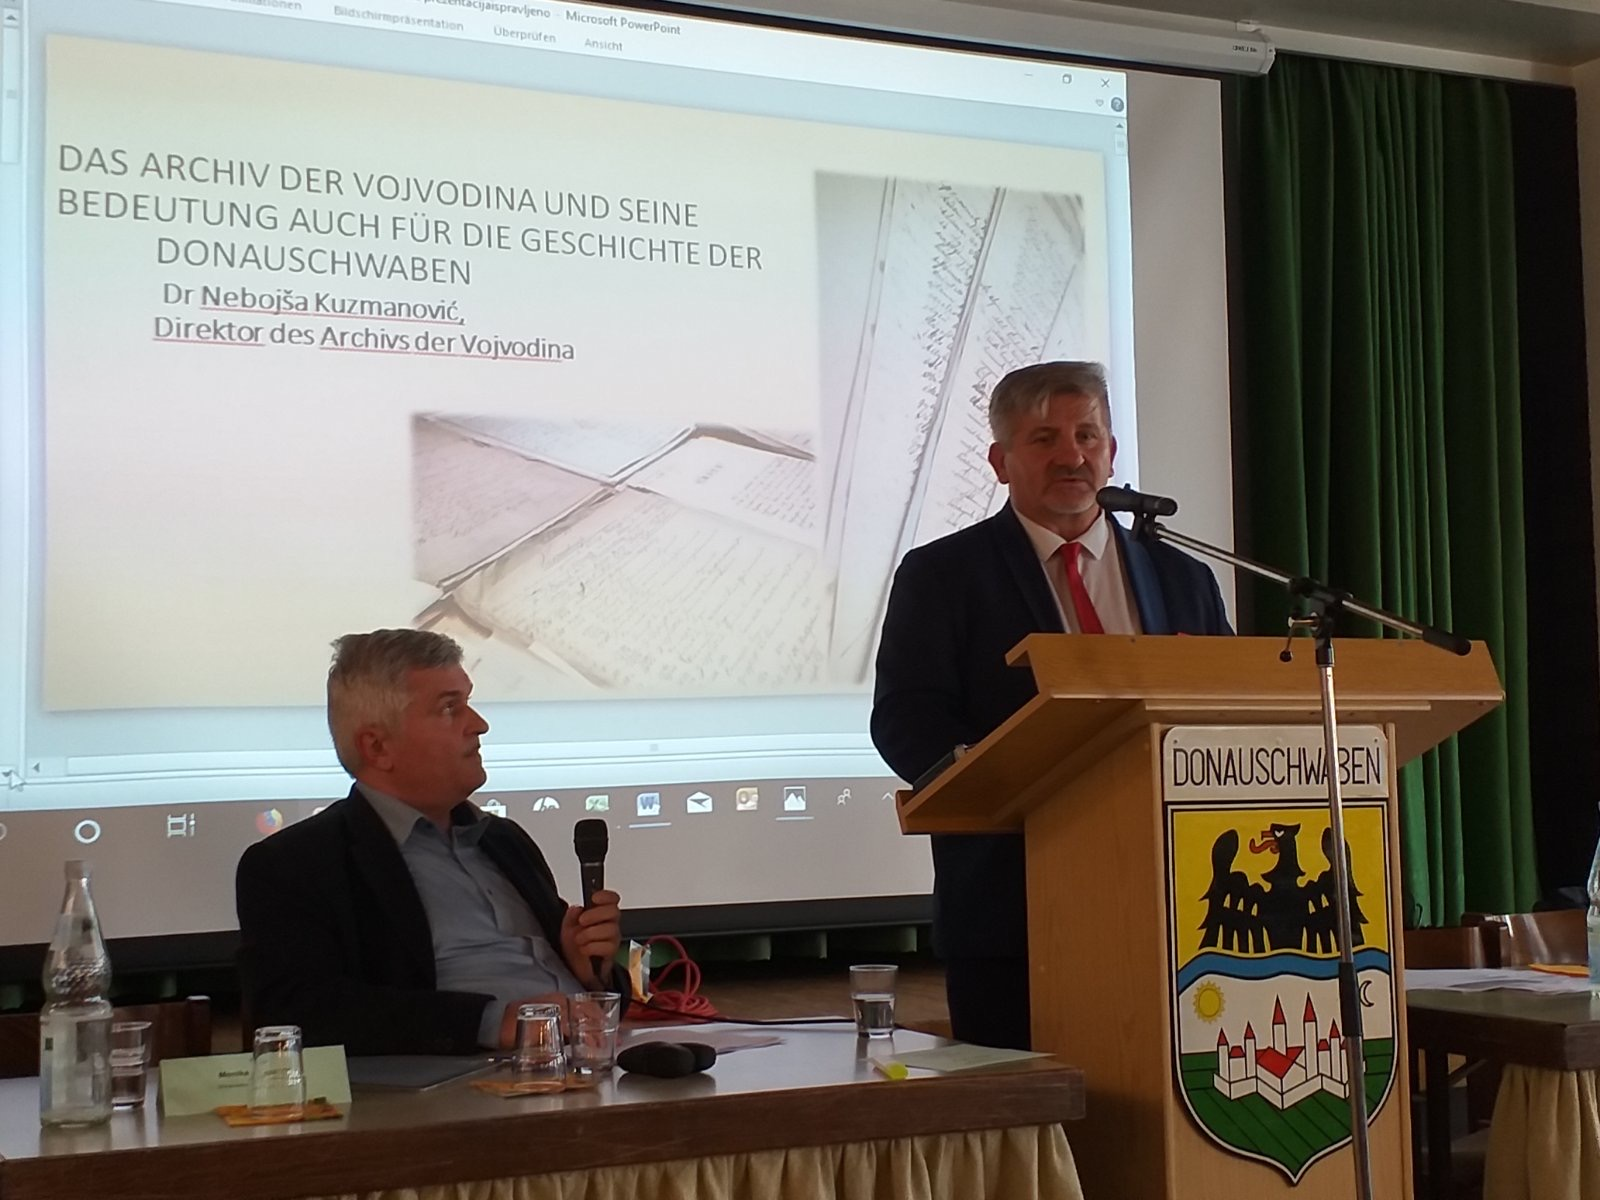 The Director of the Archives of Vojvodina Takes Part in a Conference Dedicated to Danube Swabians in Germany